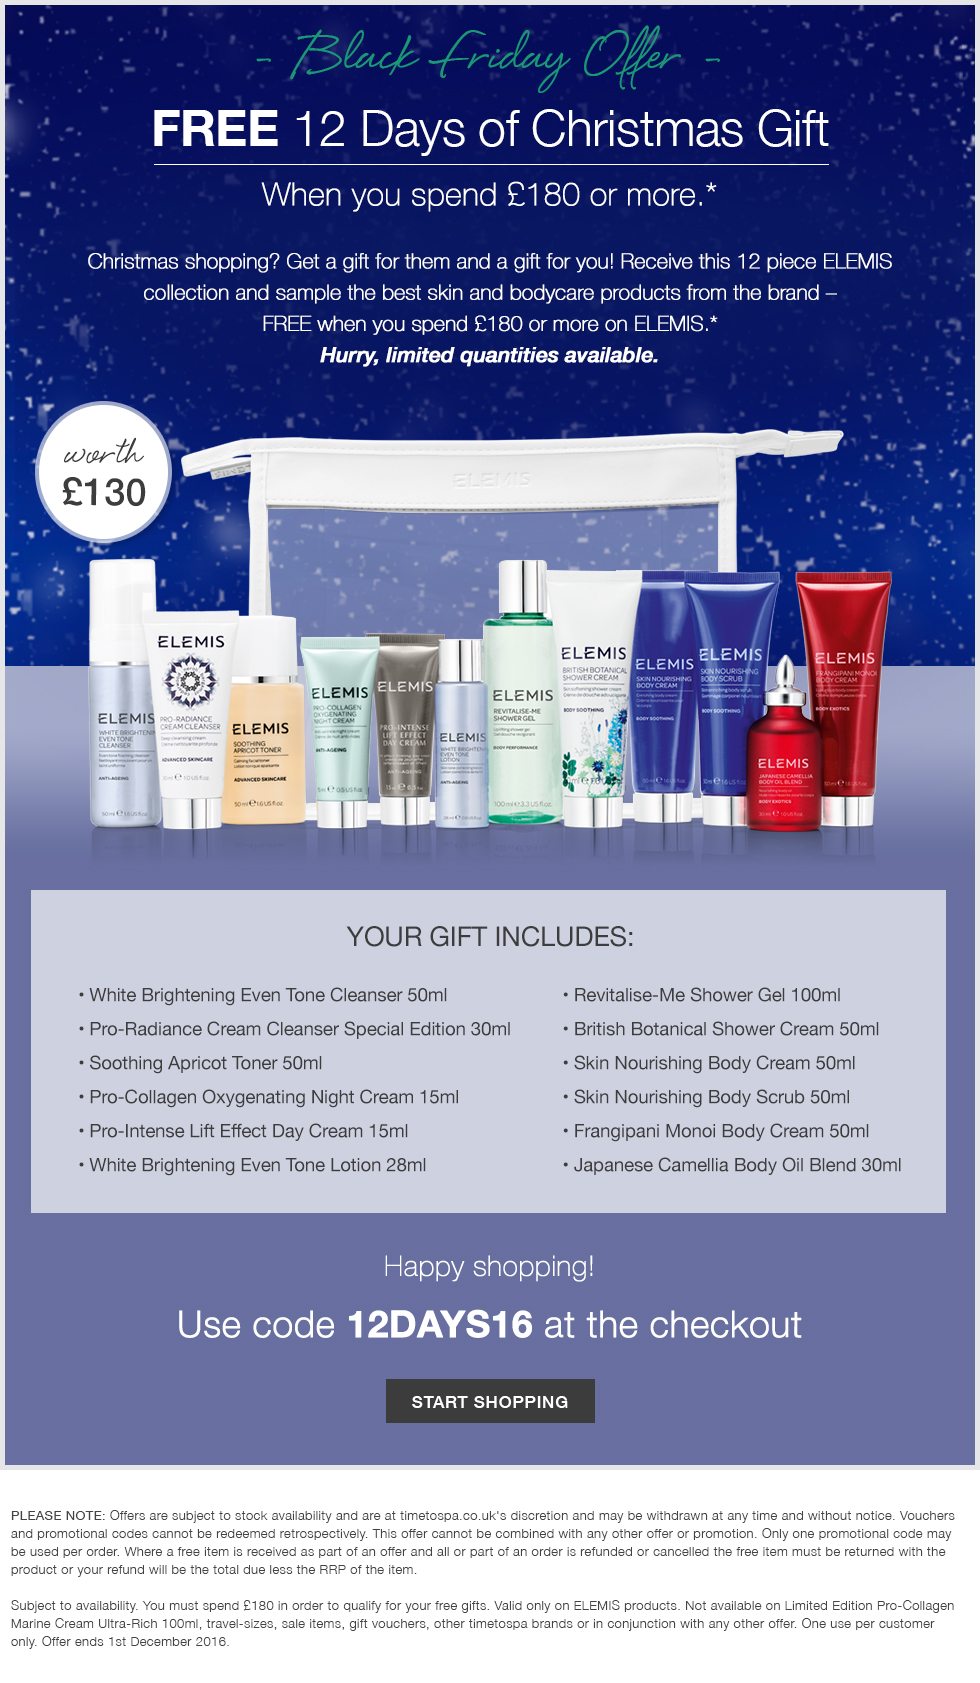 12 Days of Christmas Gift- Worth Up To £130